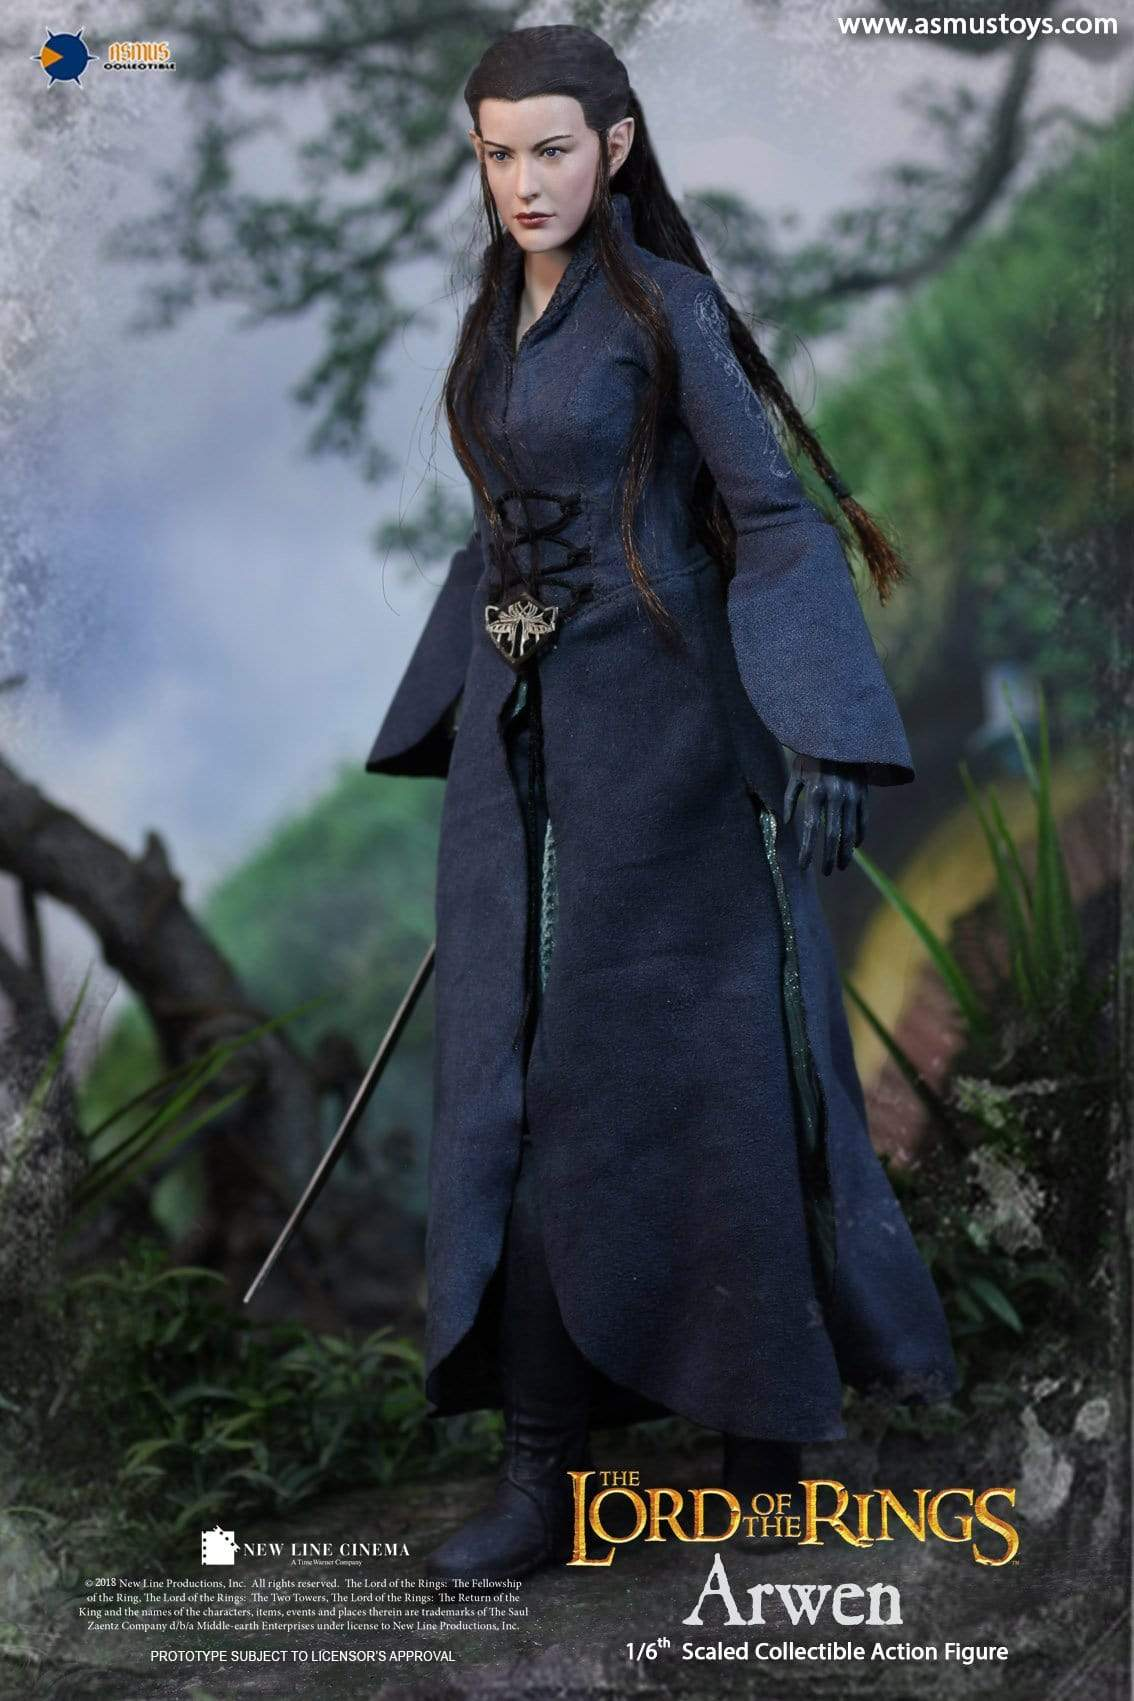 Asmus Toys LOTR021 The Lord of the Rings Series Arwen 1//6 Figure